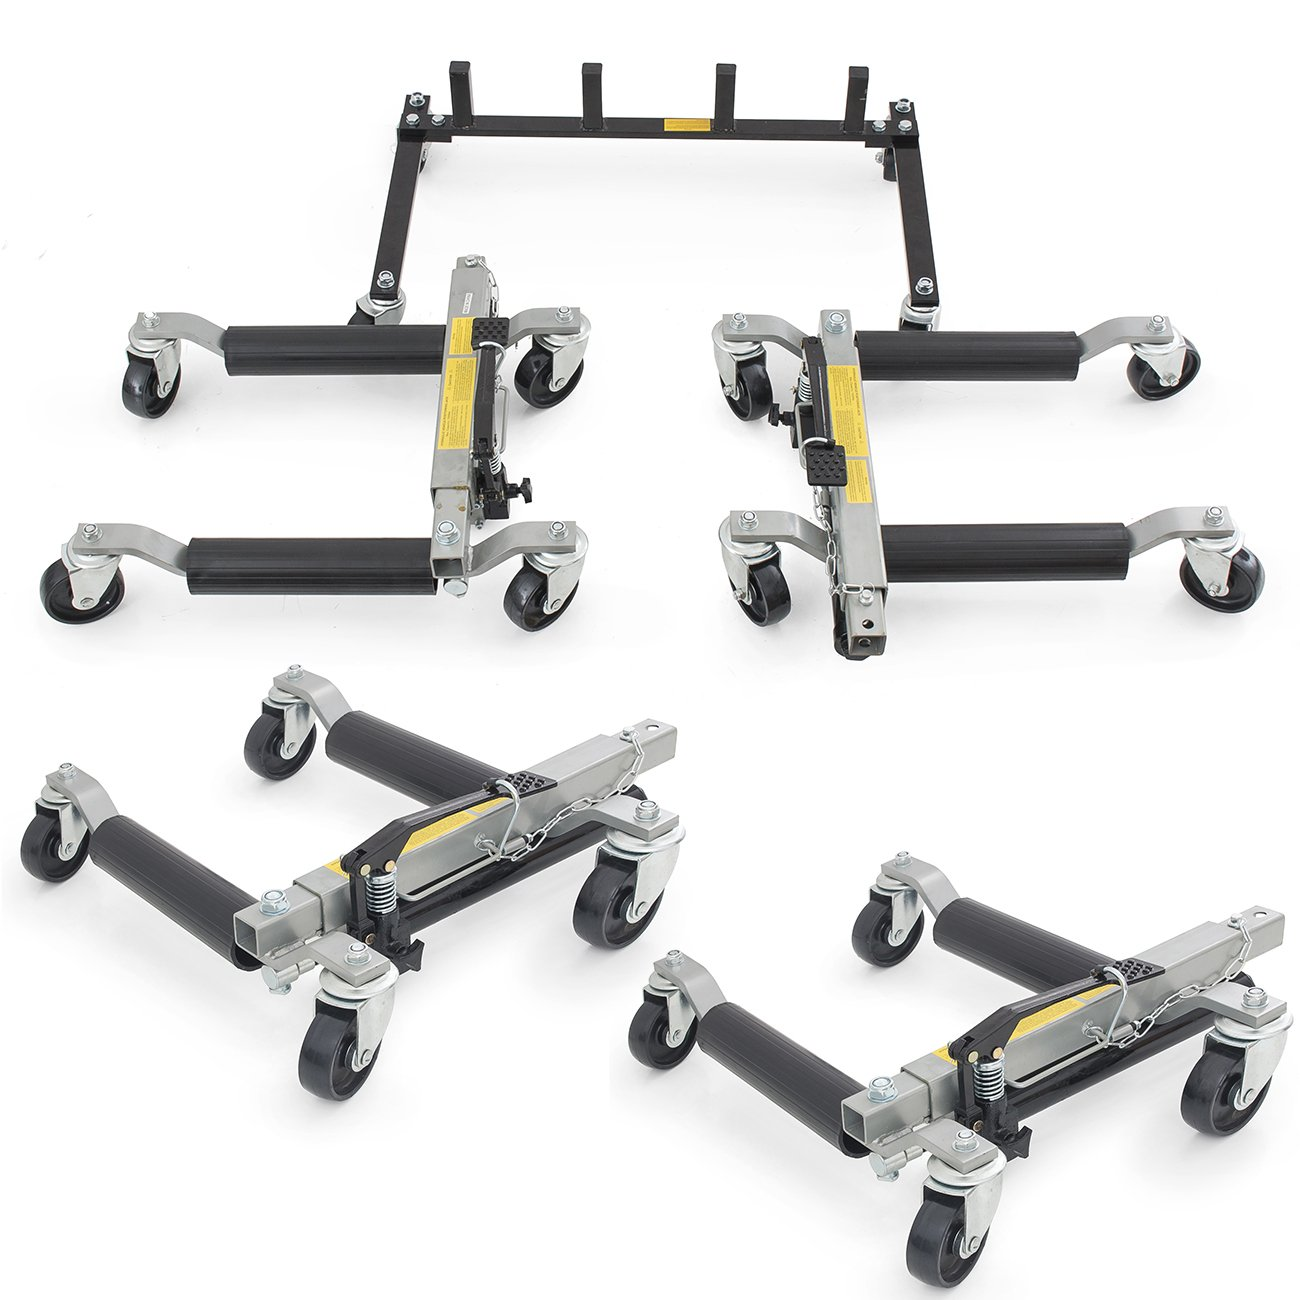 ARKSEN 4PC Hydraulic Vehicle Positioning Jacks 12'' Tire Dolly EZ Lift Car Mover w/ Stand